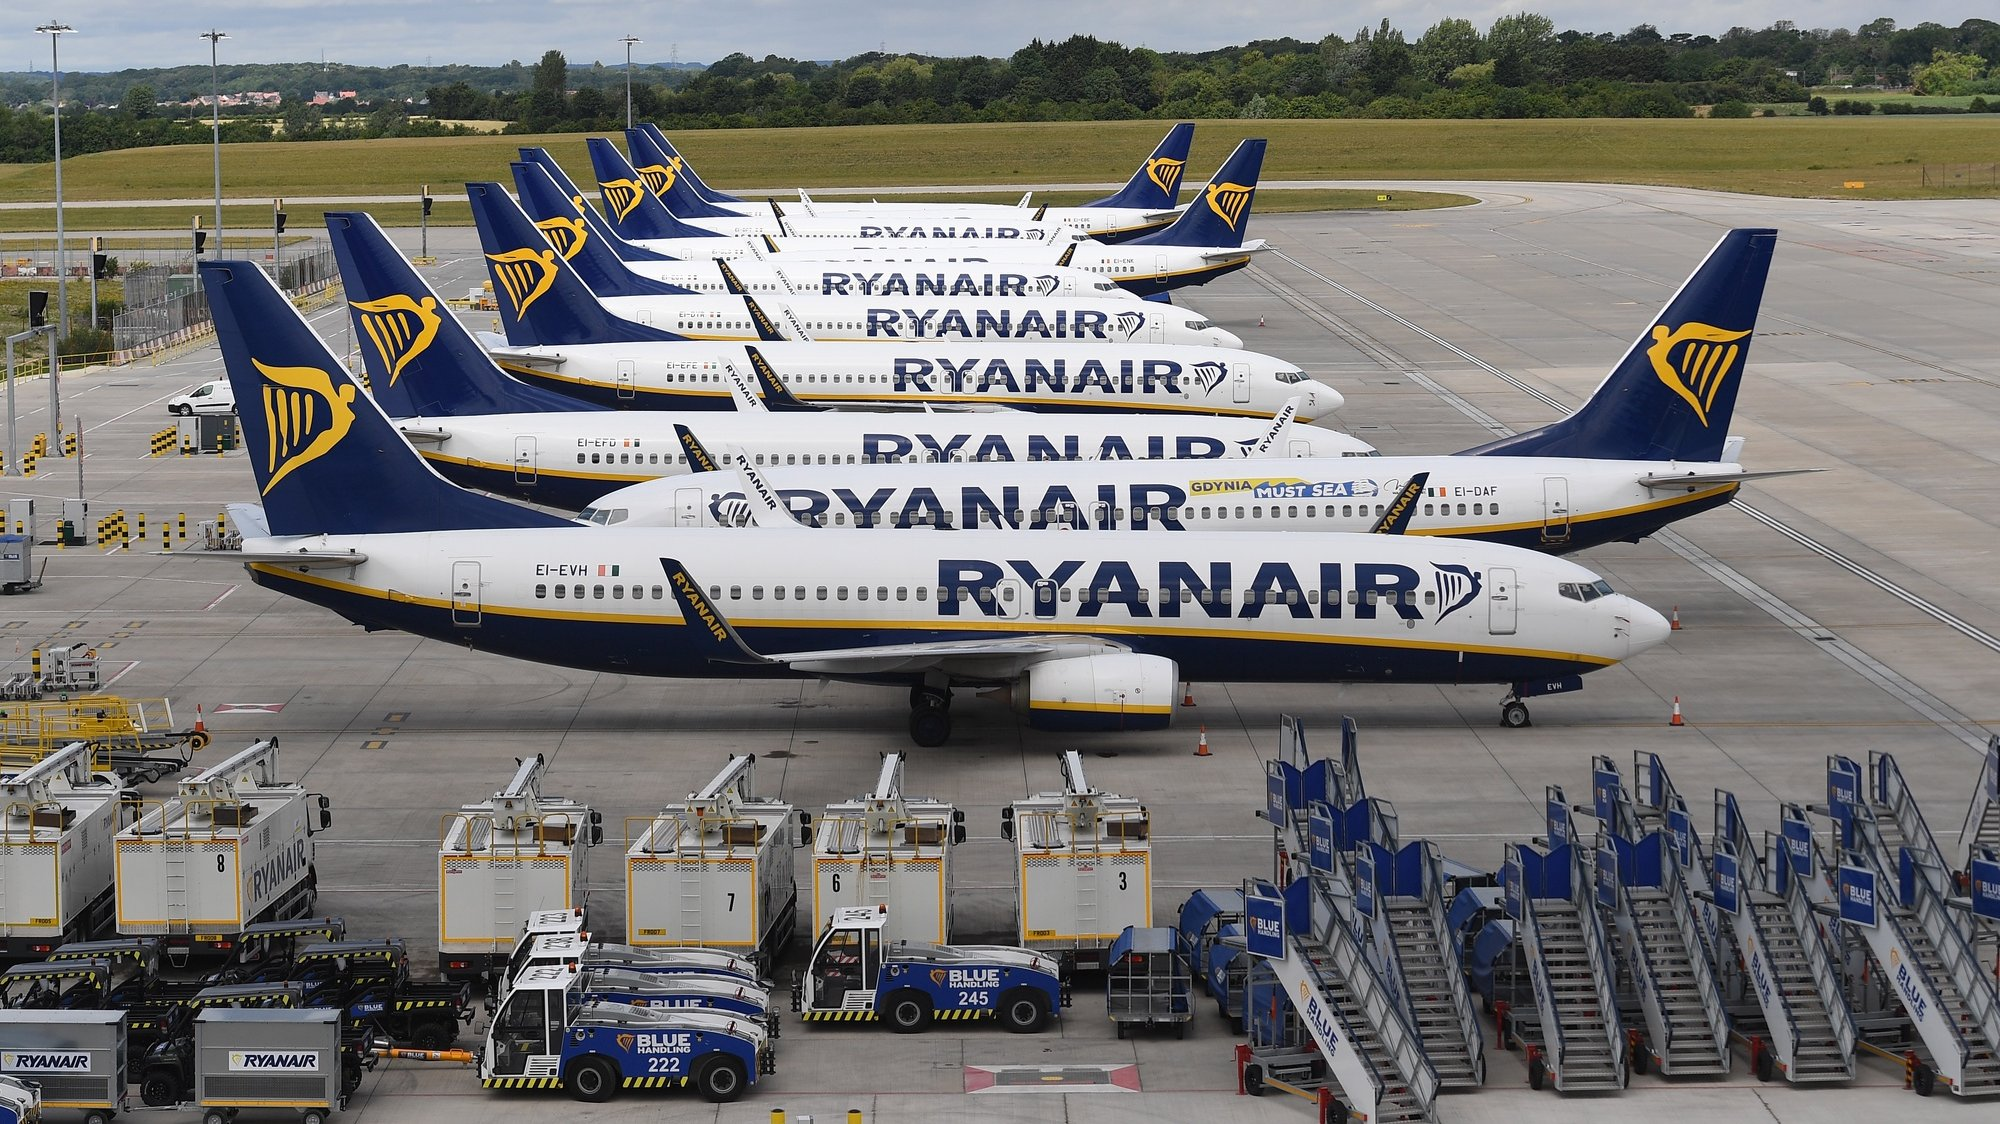 epa08568713 (FILE) - Ryanair aircraft at Stansted Airport in London, Britain, 01 July 2020 (reissued 27 July 2020). Ryanair, that suffered considerably of the pandemic of SARS-CoV-2 coronavirus which causes the Covid-19 disease, released their 1st quarter ended June 2020 results on 27 July 2020 saying they suffered a loss of 185 million euro as a result of having to ground their entire fleet of planes during the epidemic from mid-March to end of June because of EU-imposed travel and flight restrictions. The company made a 243 million euro profit in same quarter in 2019.  EPA/ANDY RAIN